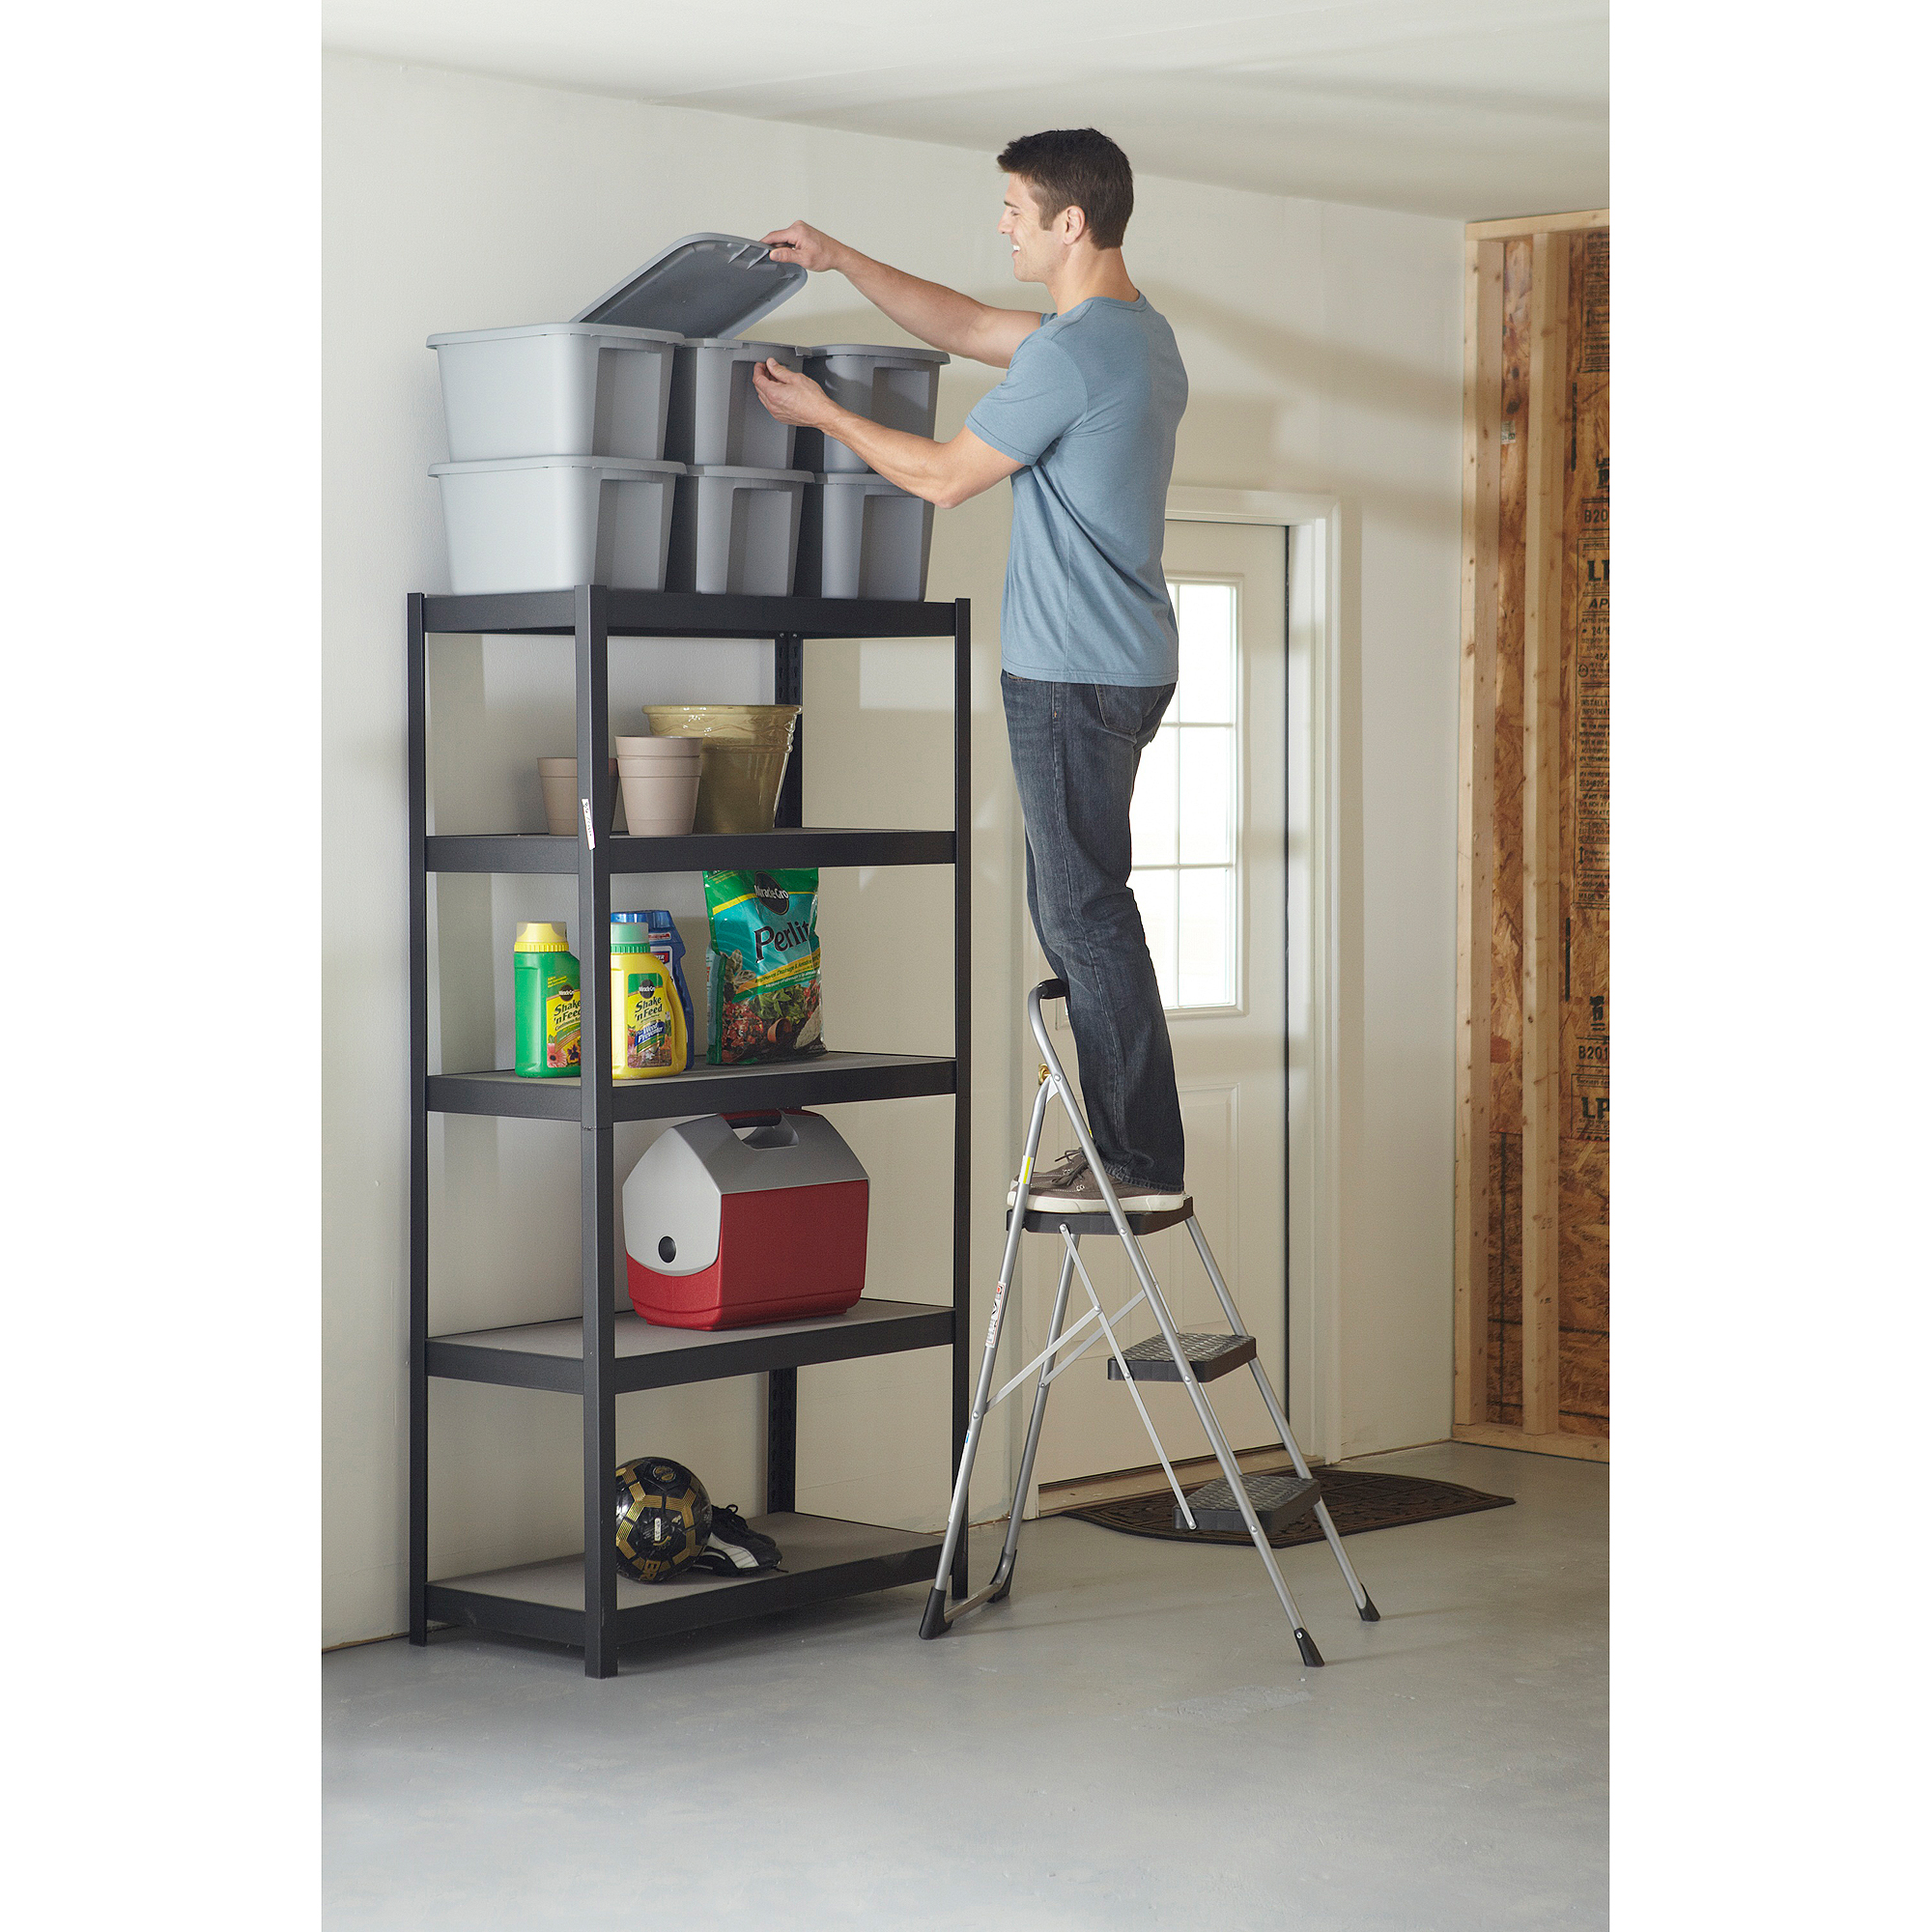 Costway 4 Step Ladder Folding Stool Heavy Duty 330Lbs Capacity Industrial Lightweight - Walmart.com  sc 1 st  Walmart & Costway 4 Step Ladder Folding Stool Heavy Duty 330Lbs Capacity ... islam-shia.org